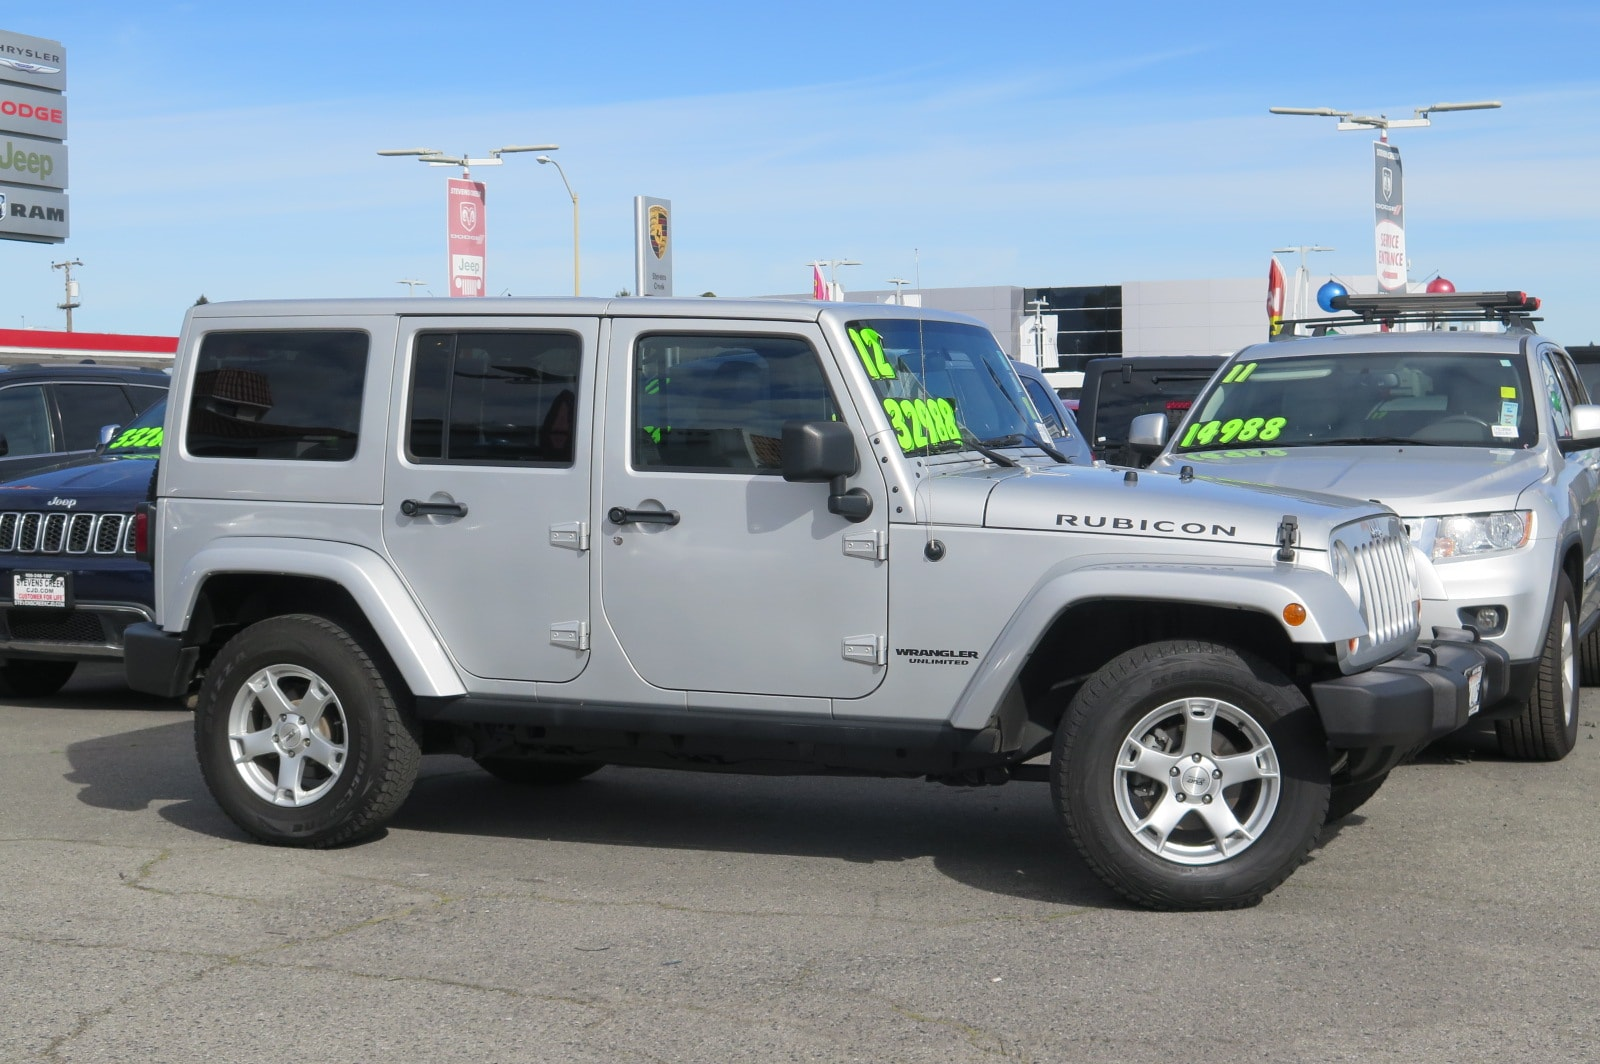 2012 Jeep Wrangler Unlimited Unlimited Rubicon SUV